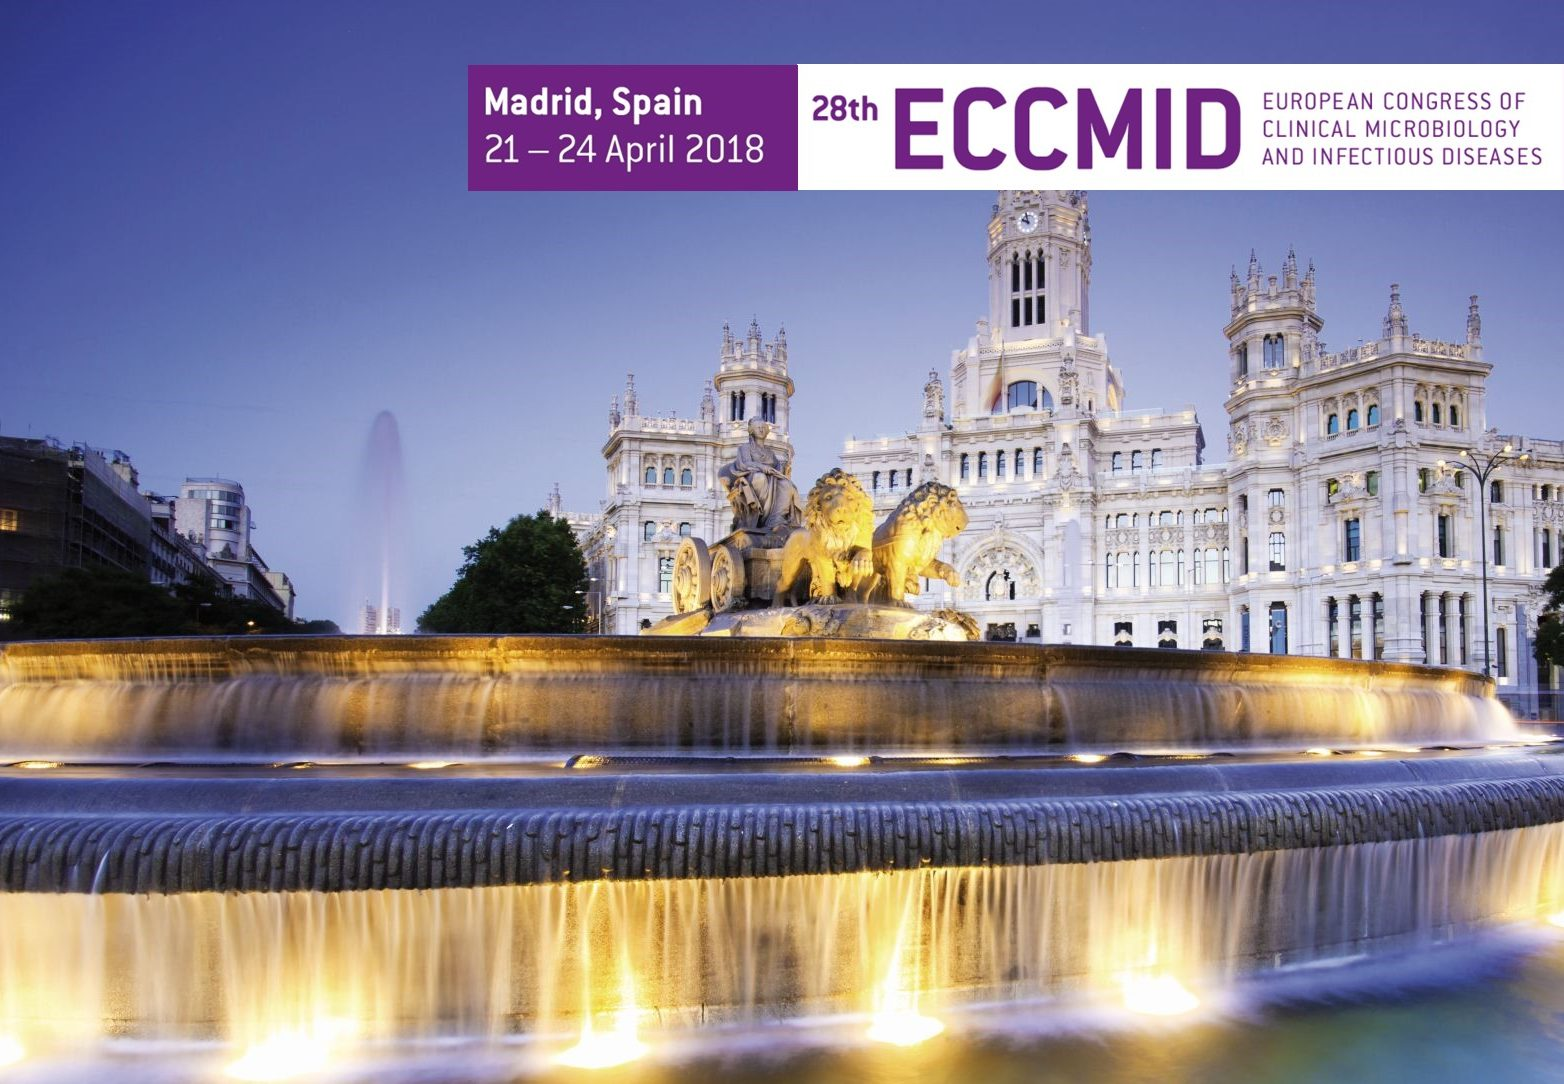 Visit Eumedica at European Congress of Clinical Microbiology and Infectious Diseases